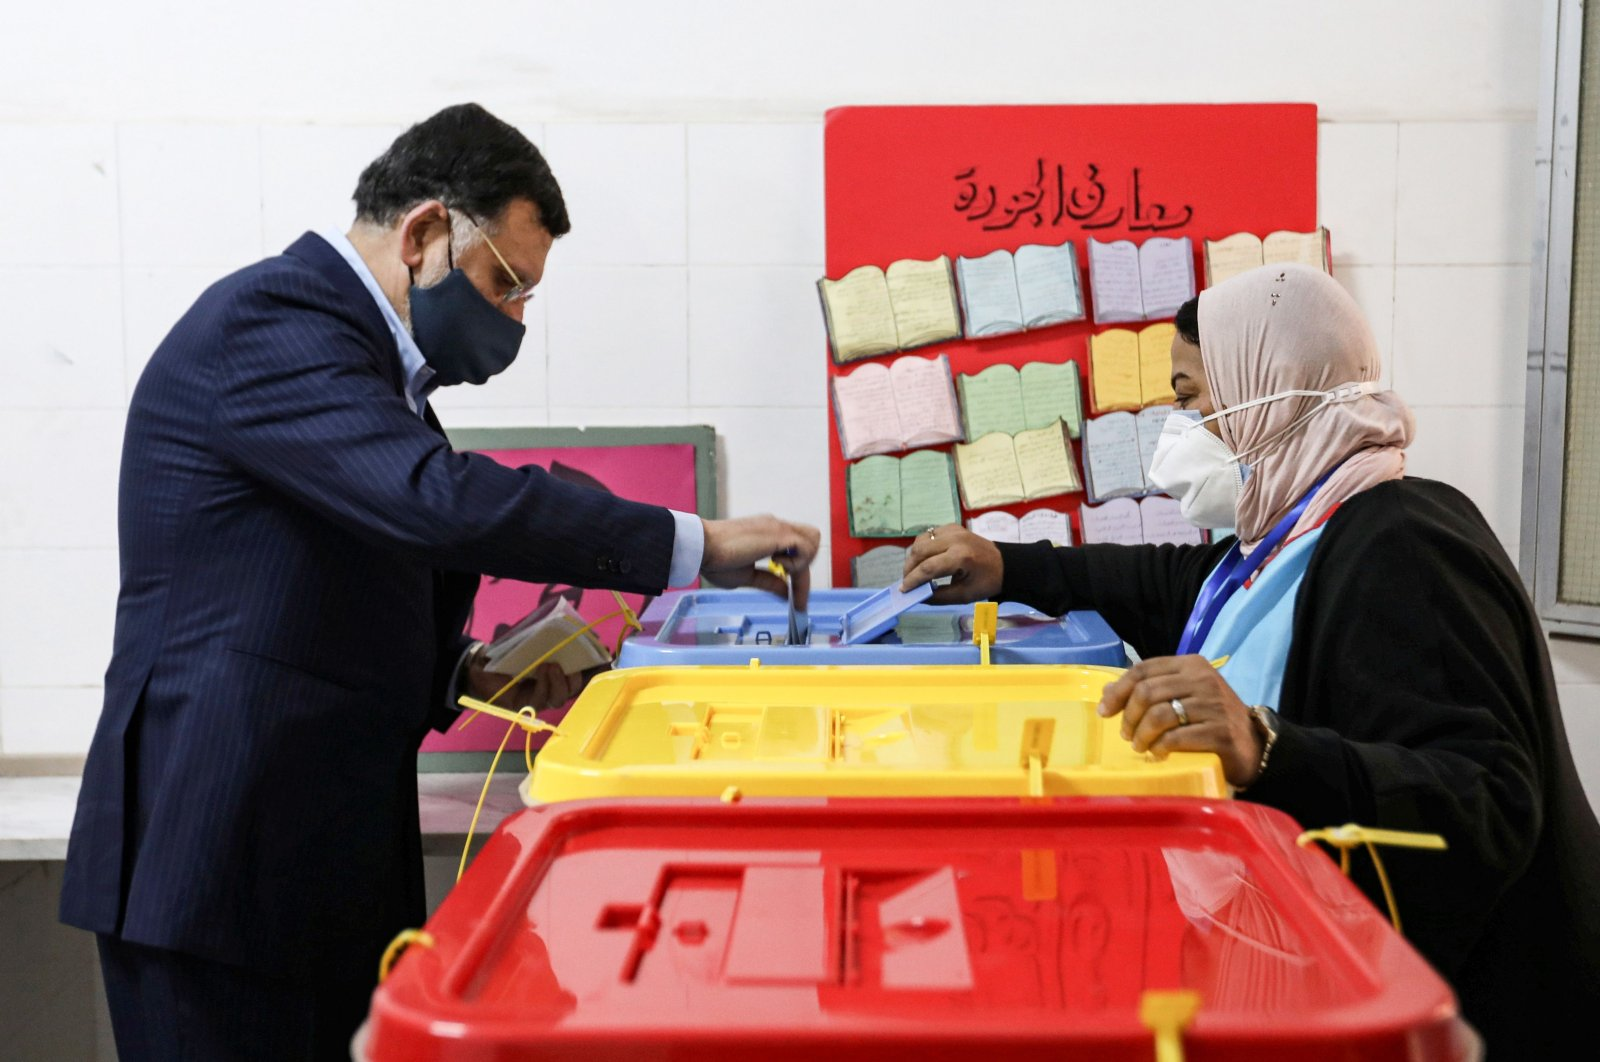 Fayez Sarraj, outgoing prime minister of the UN-recognized Libyan Government of National Accord (GNA), casts his vote during an election for the Tripoli Municipal Council, in Libya's capital on Feb. 6, 2021. (AFP Photo)